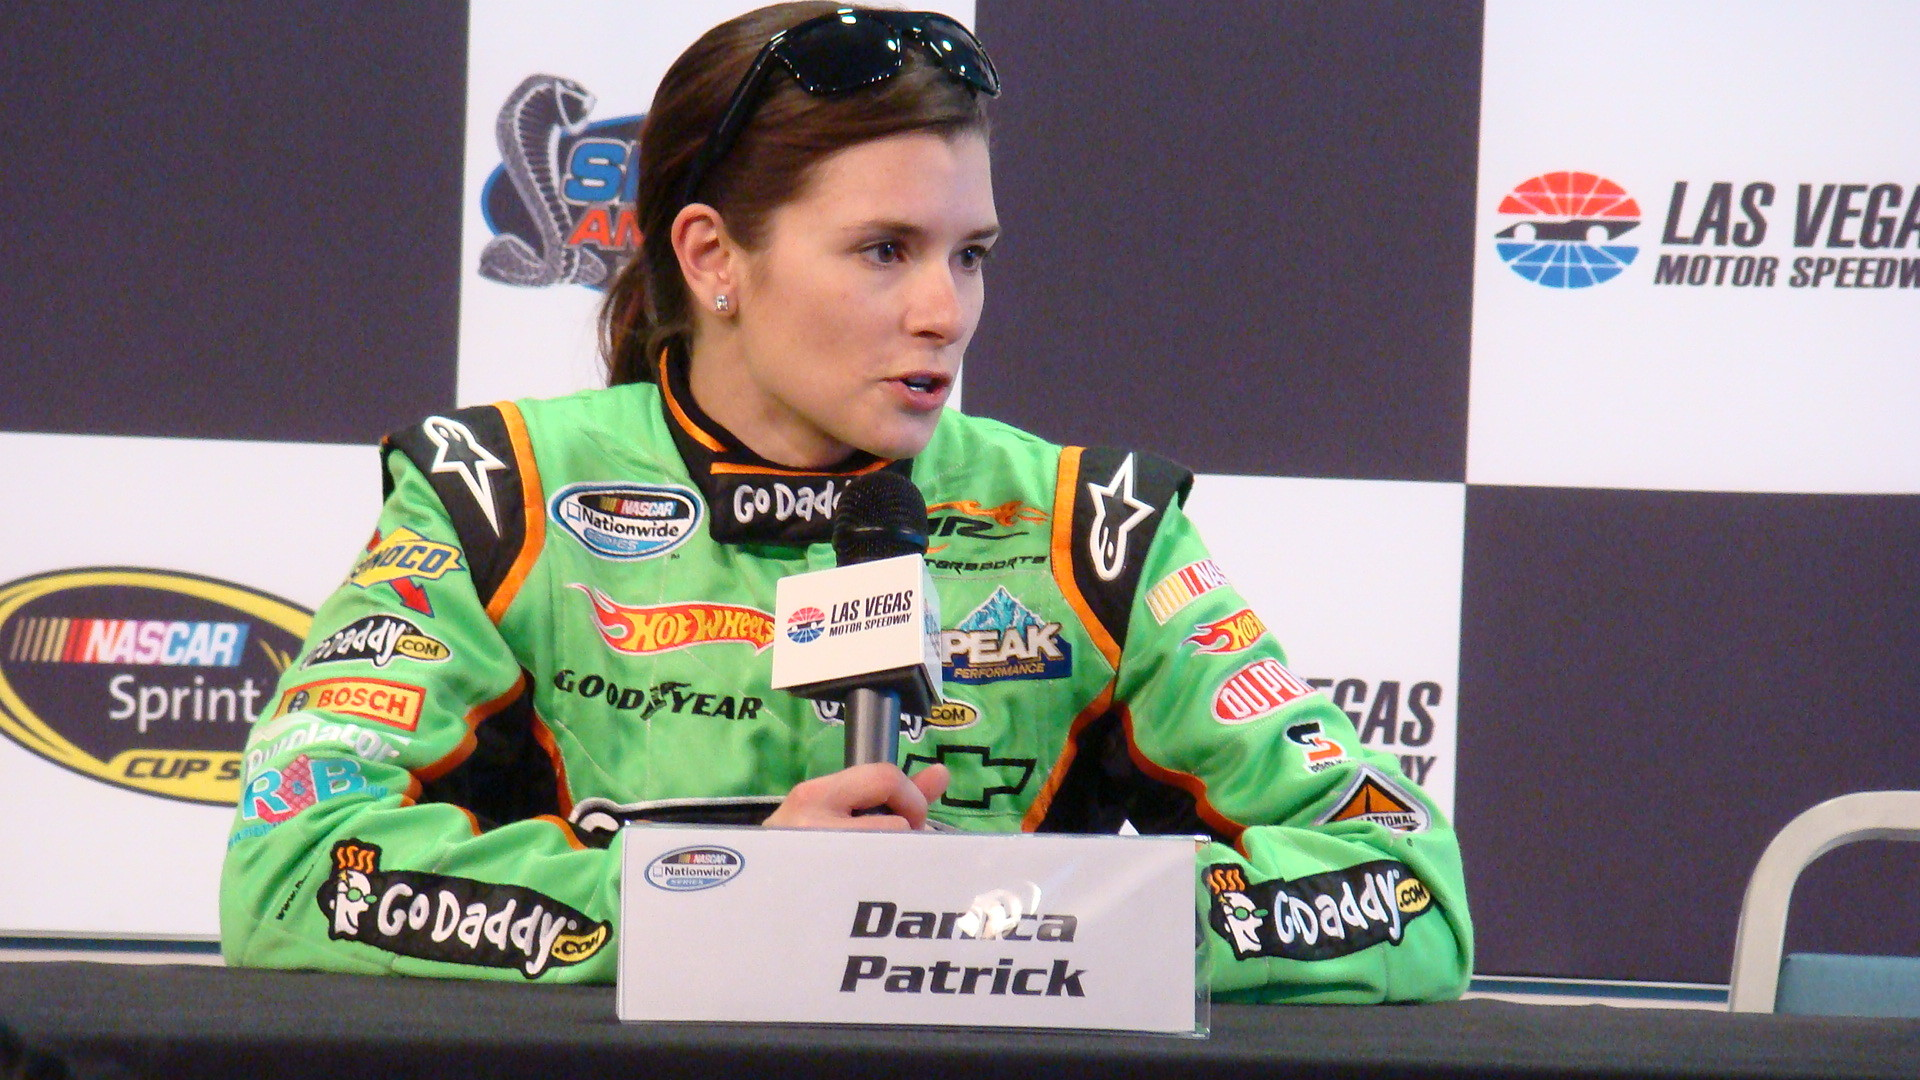 Patrick will be driving the GoDaddy.com Chevrolet from JR Motorsports